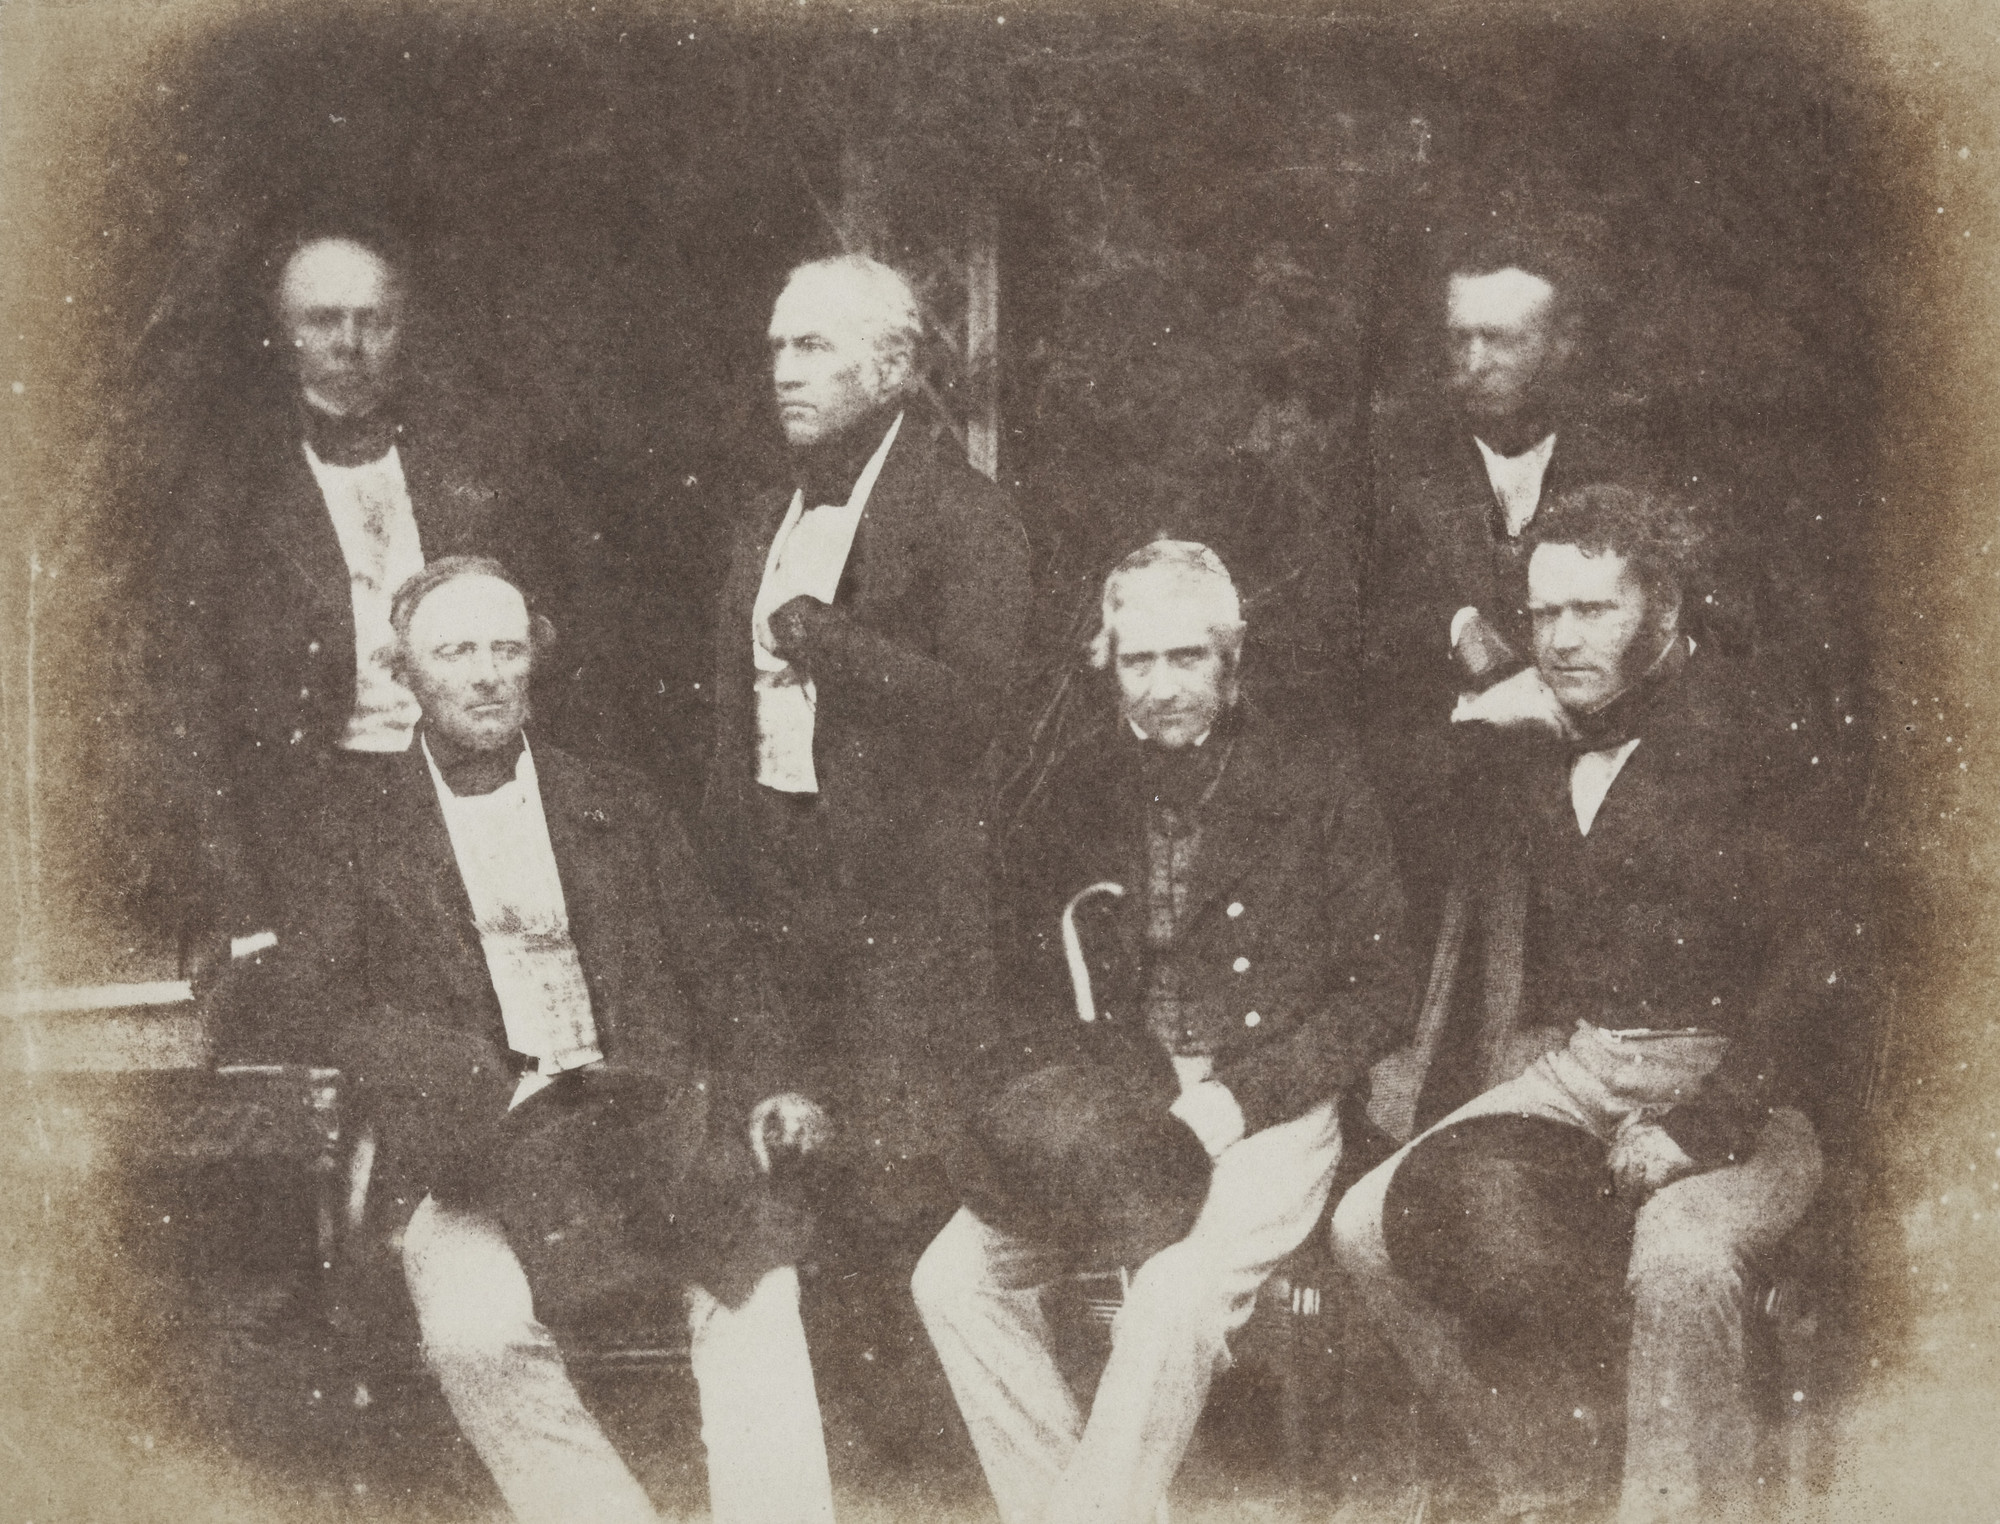 David Octavius Hill, Robert Adamson. John Gersdorp, King of Saxony, Unknown Man, The Earl of Morton, Wyndam Anstruther and Sir Ralph Anstruther. 1844